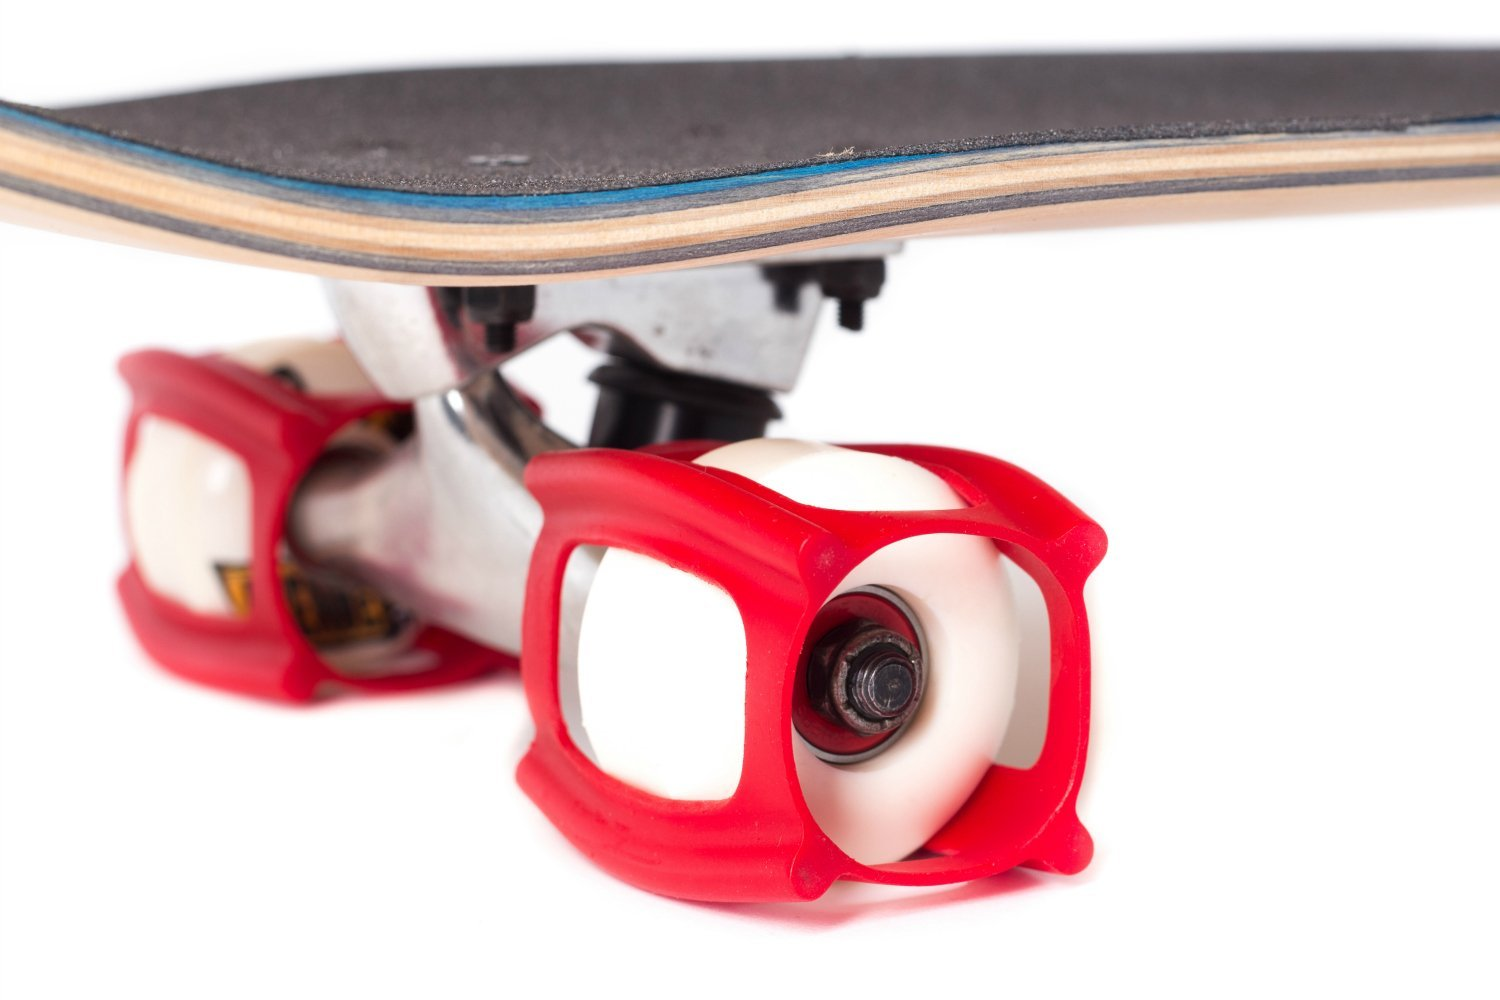 SkaterTrainer 2.0, The Rubber Skateboarding Accessory for Perfecting Your Ollie and Kickflip - Learn, Practice and Land Tricks in No Time! (Red)